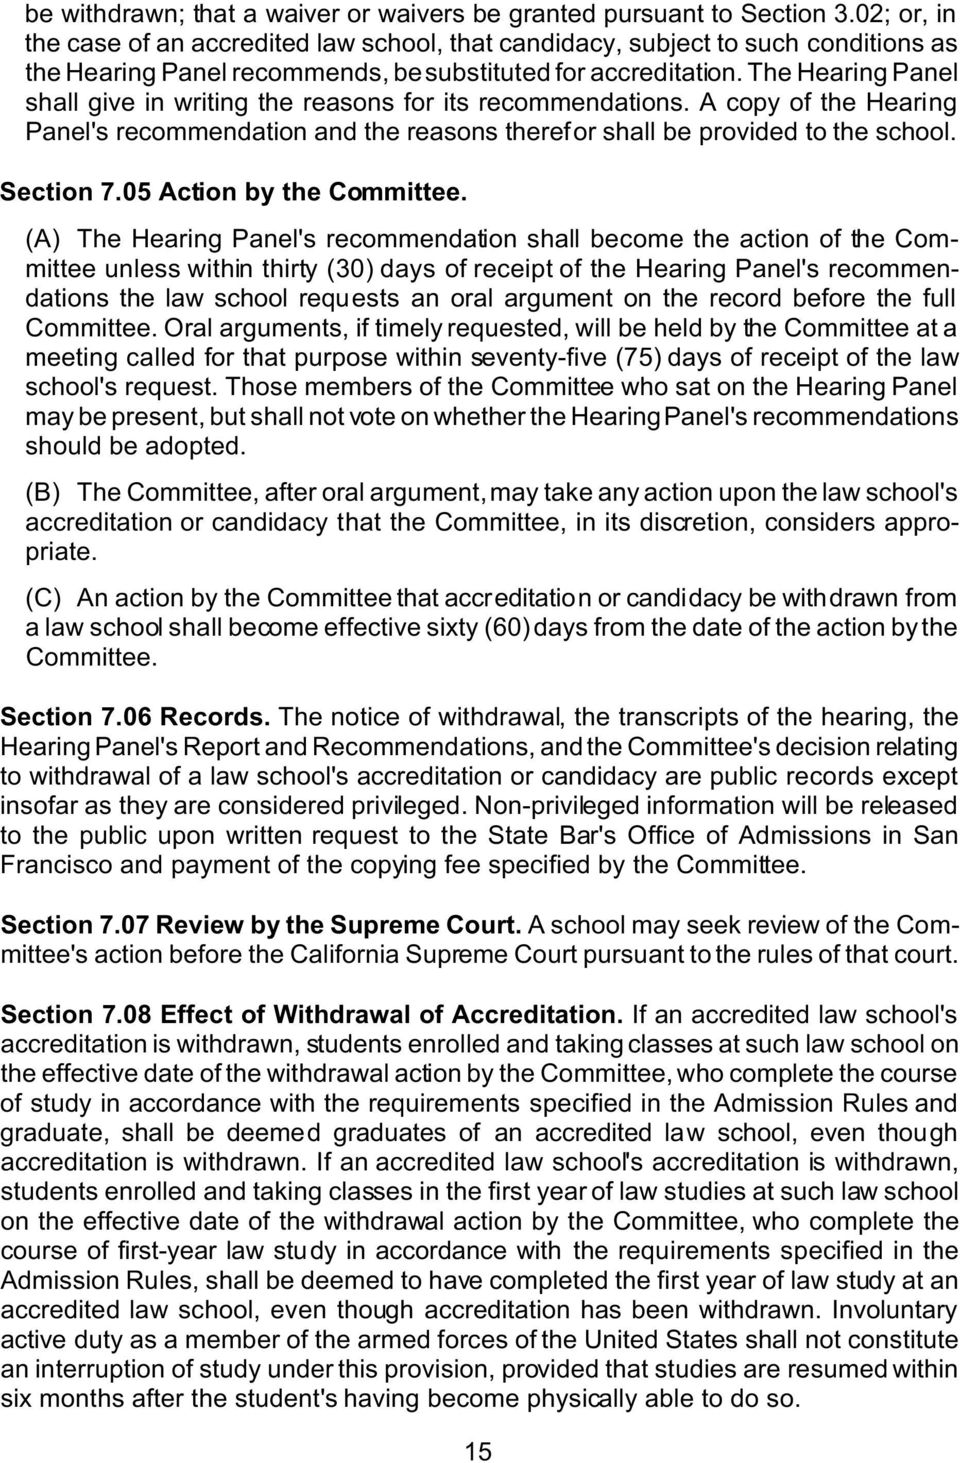 The Hearing Panel shall give in writing the reasons for its recommendations. A copy of the Hearing Panel's recommendation and the reasons therefor shall be provided to the school. Section 7.